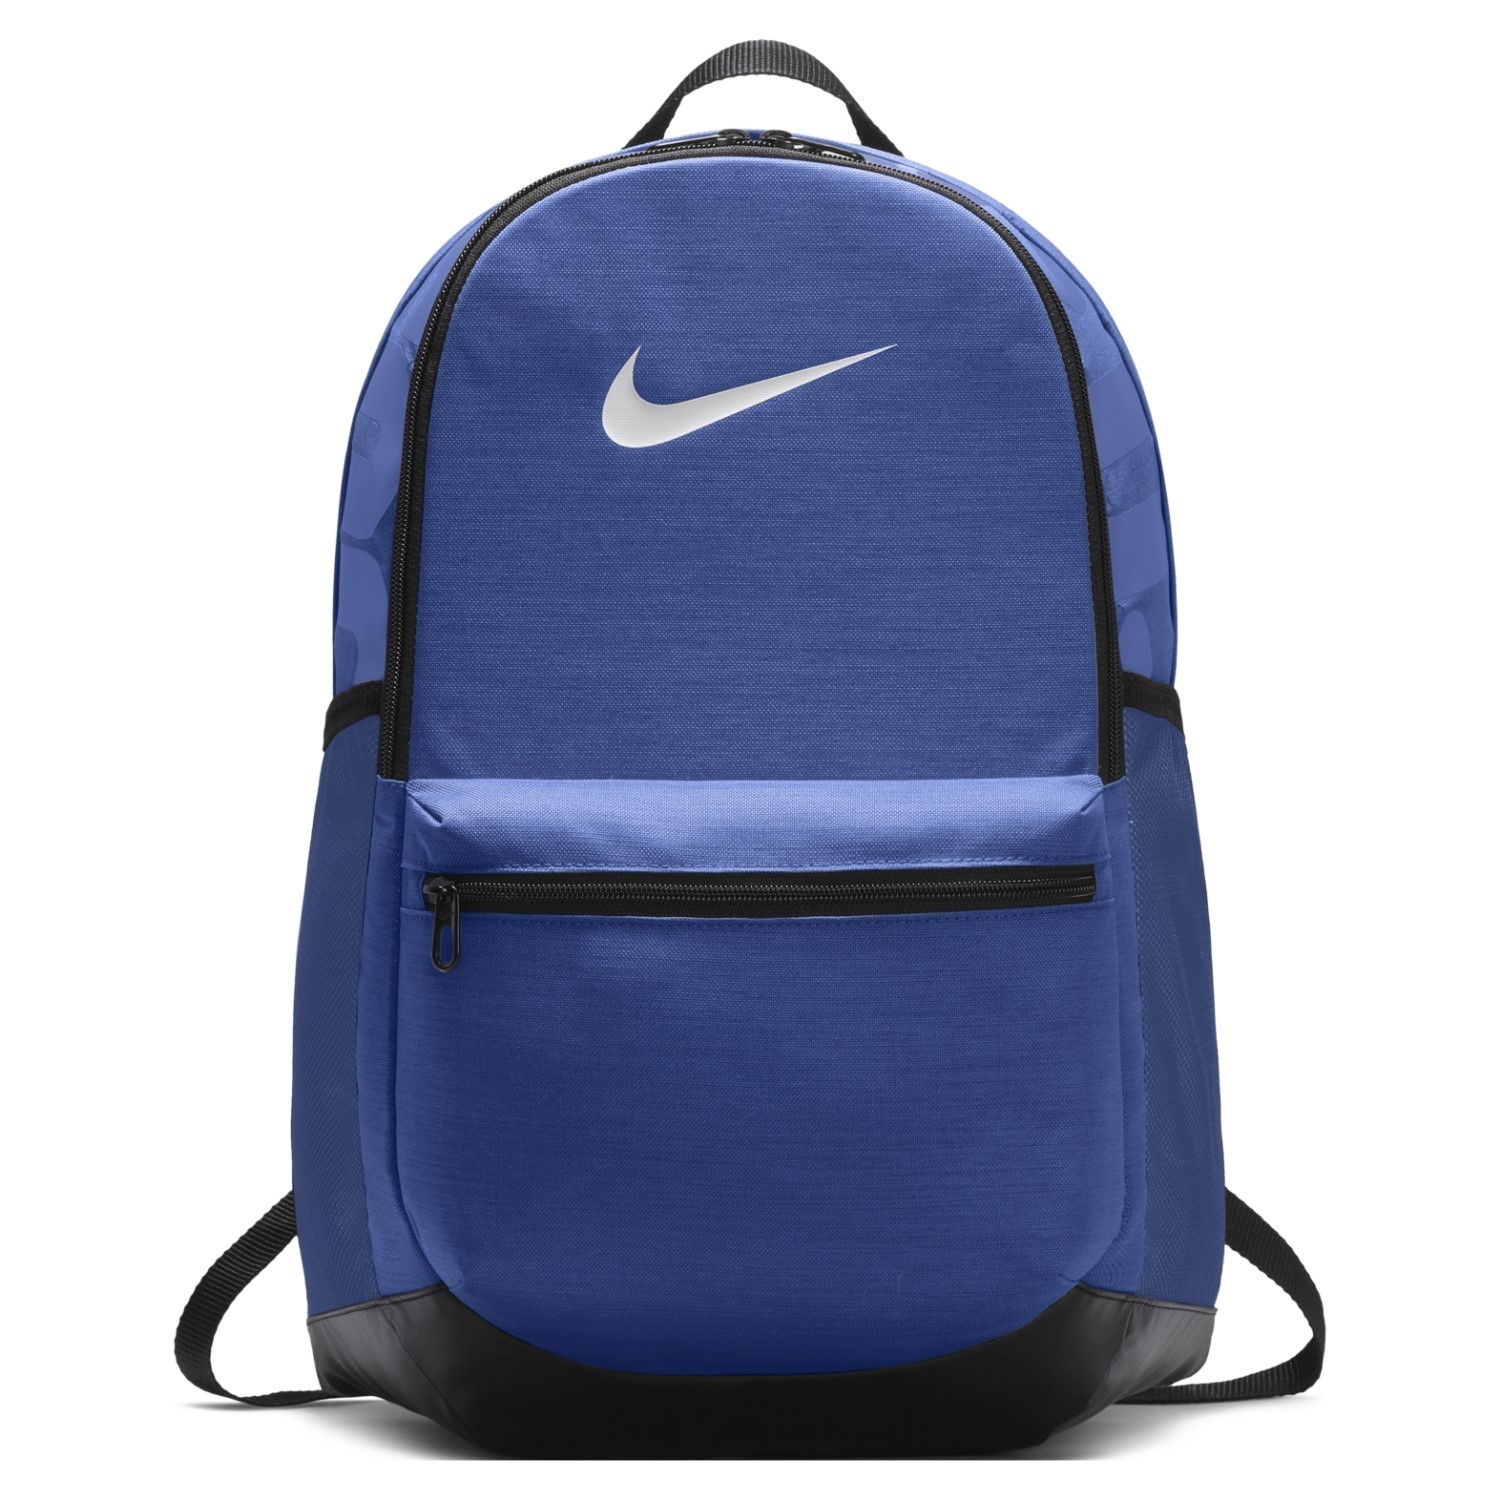 de5d5f282133 Nike Brasilia Medium Training Backpack - Game Royal Black White ...